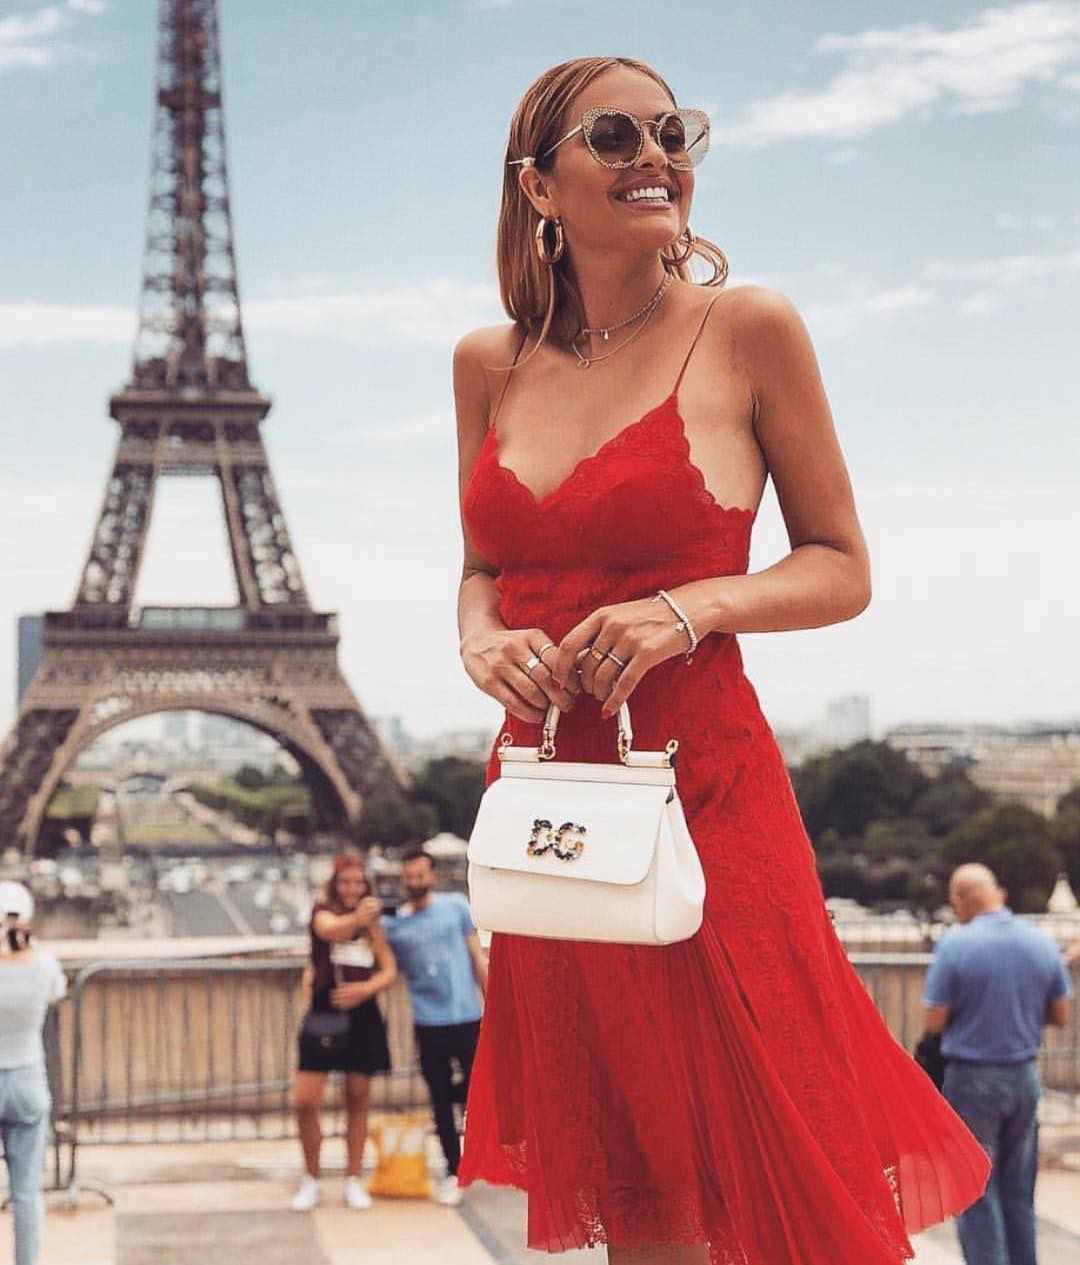 Red Lace Dress With Spaghetti Straps For Paris Summer 2021